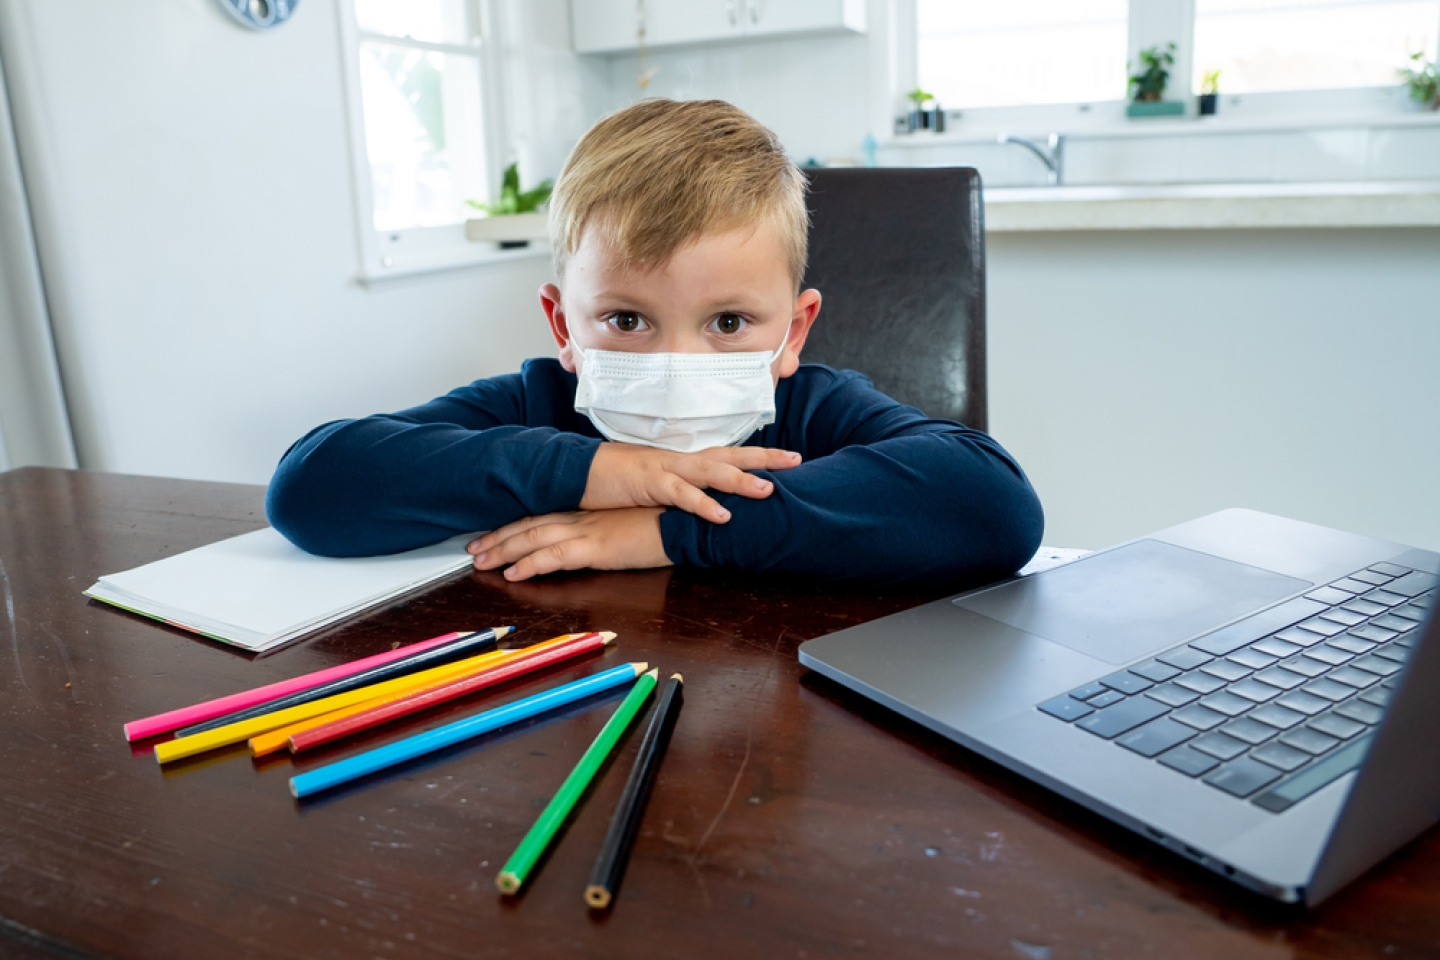 child with face mask on at desk with laptop, paper and coloring pencils